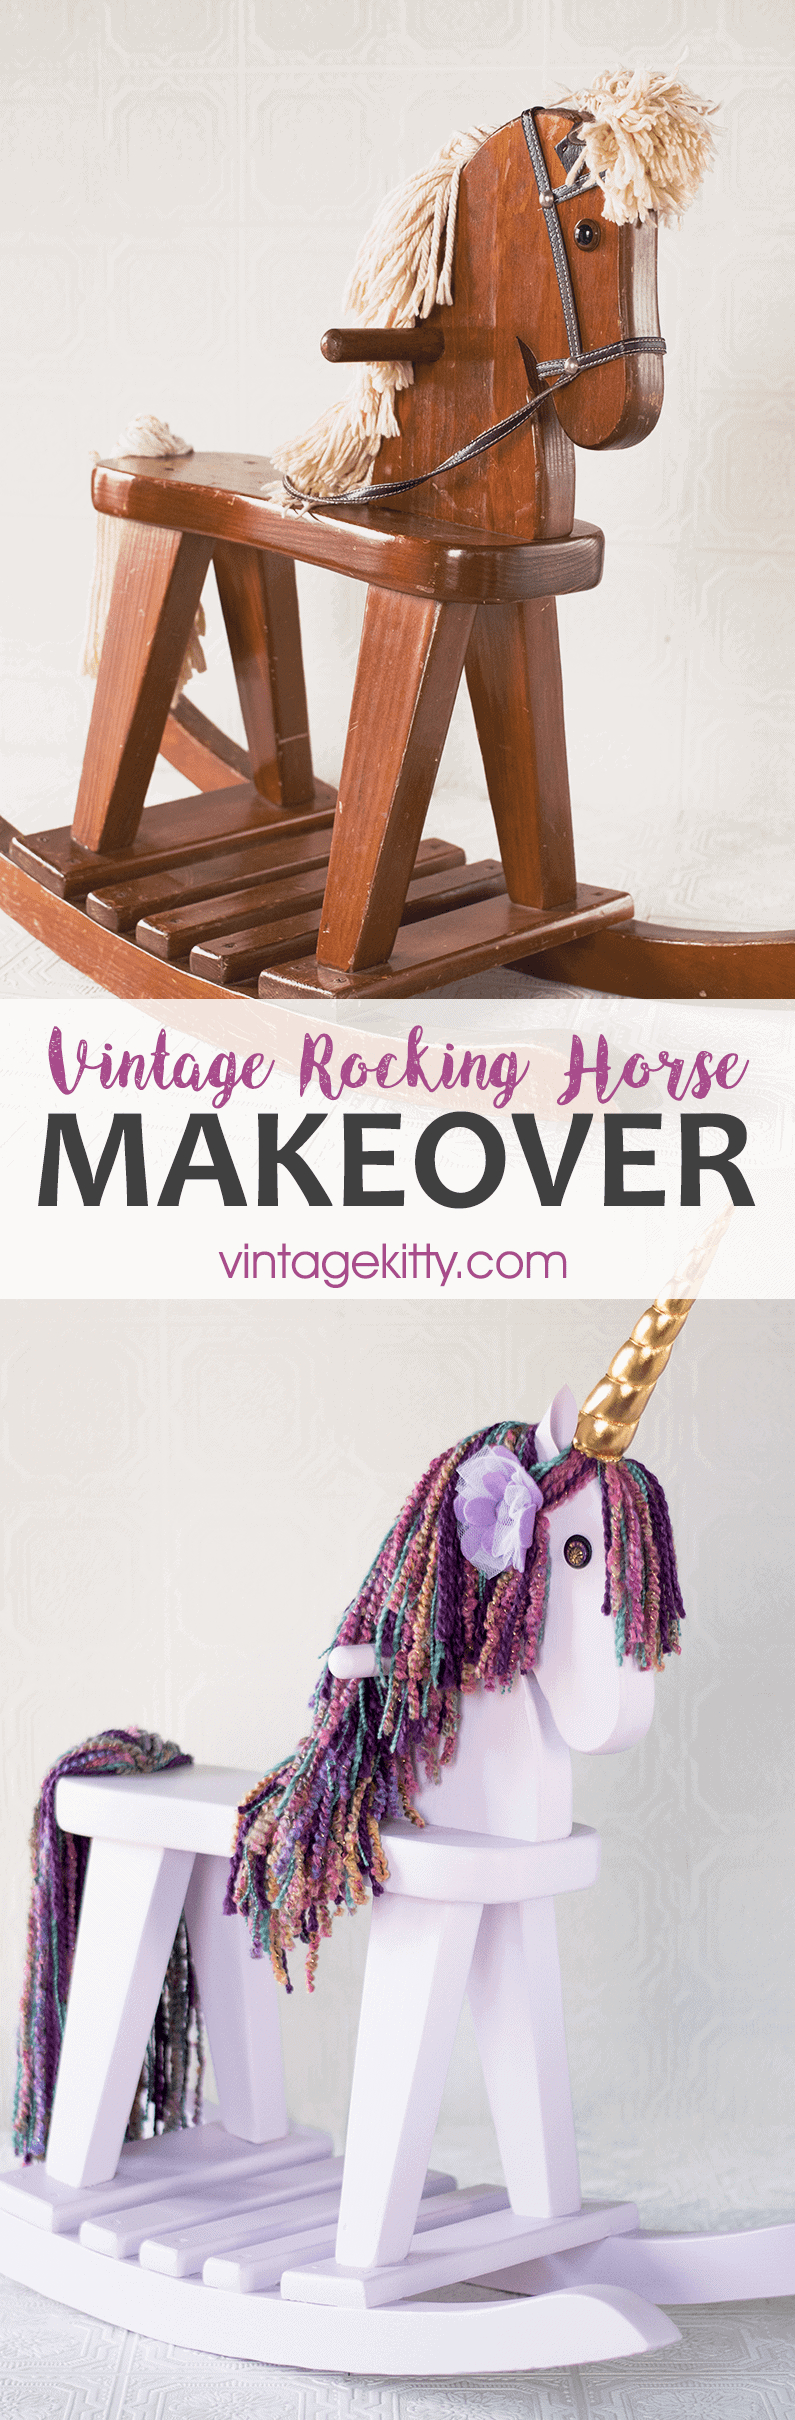 Rocking Horse Makeover Unicorn Pin - Vintage Rocking Horse Makeover into a Unicorn